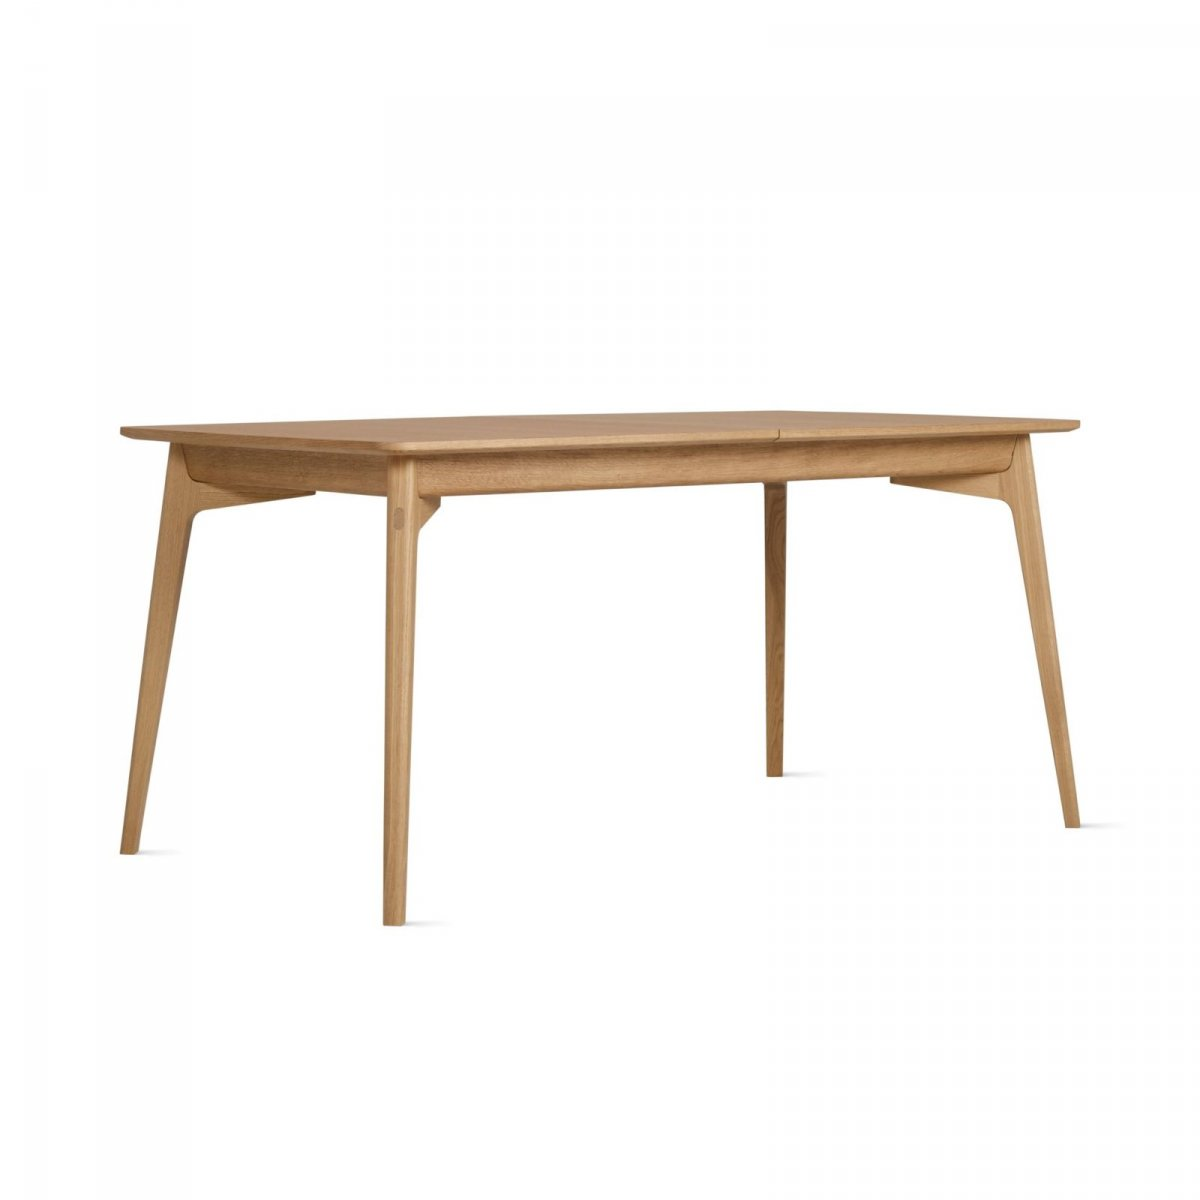 Dulwich Table, oak.